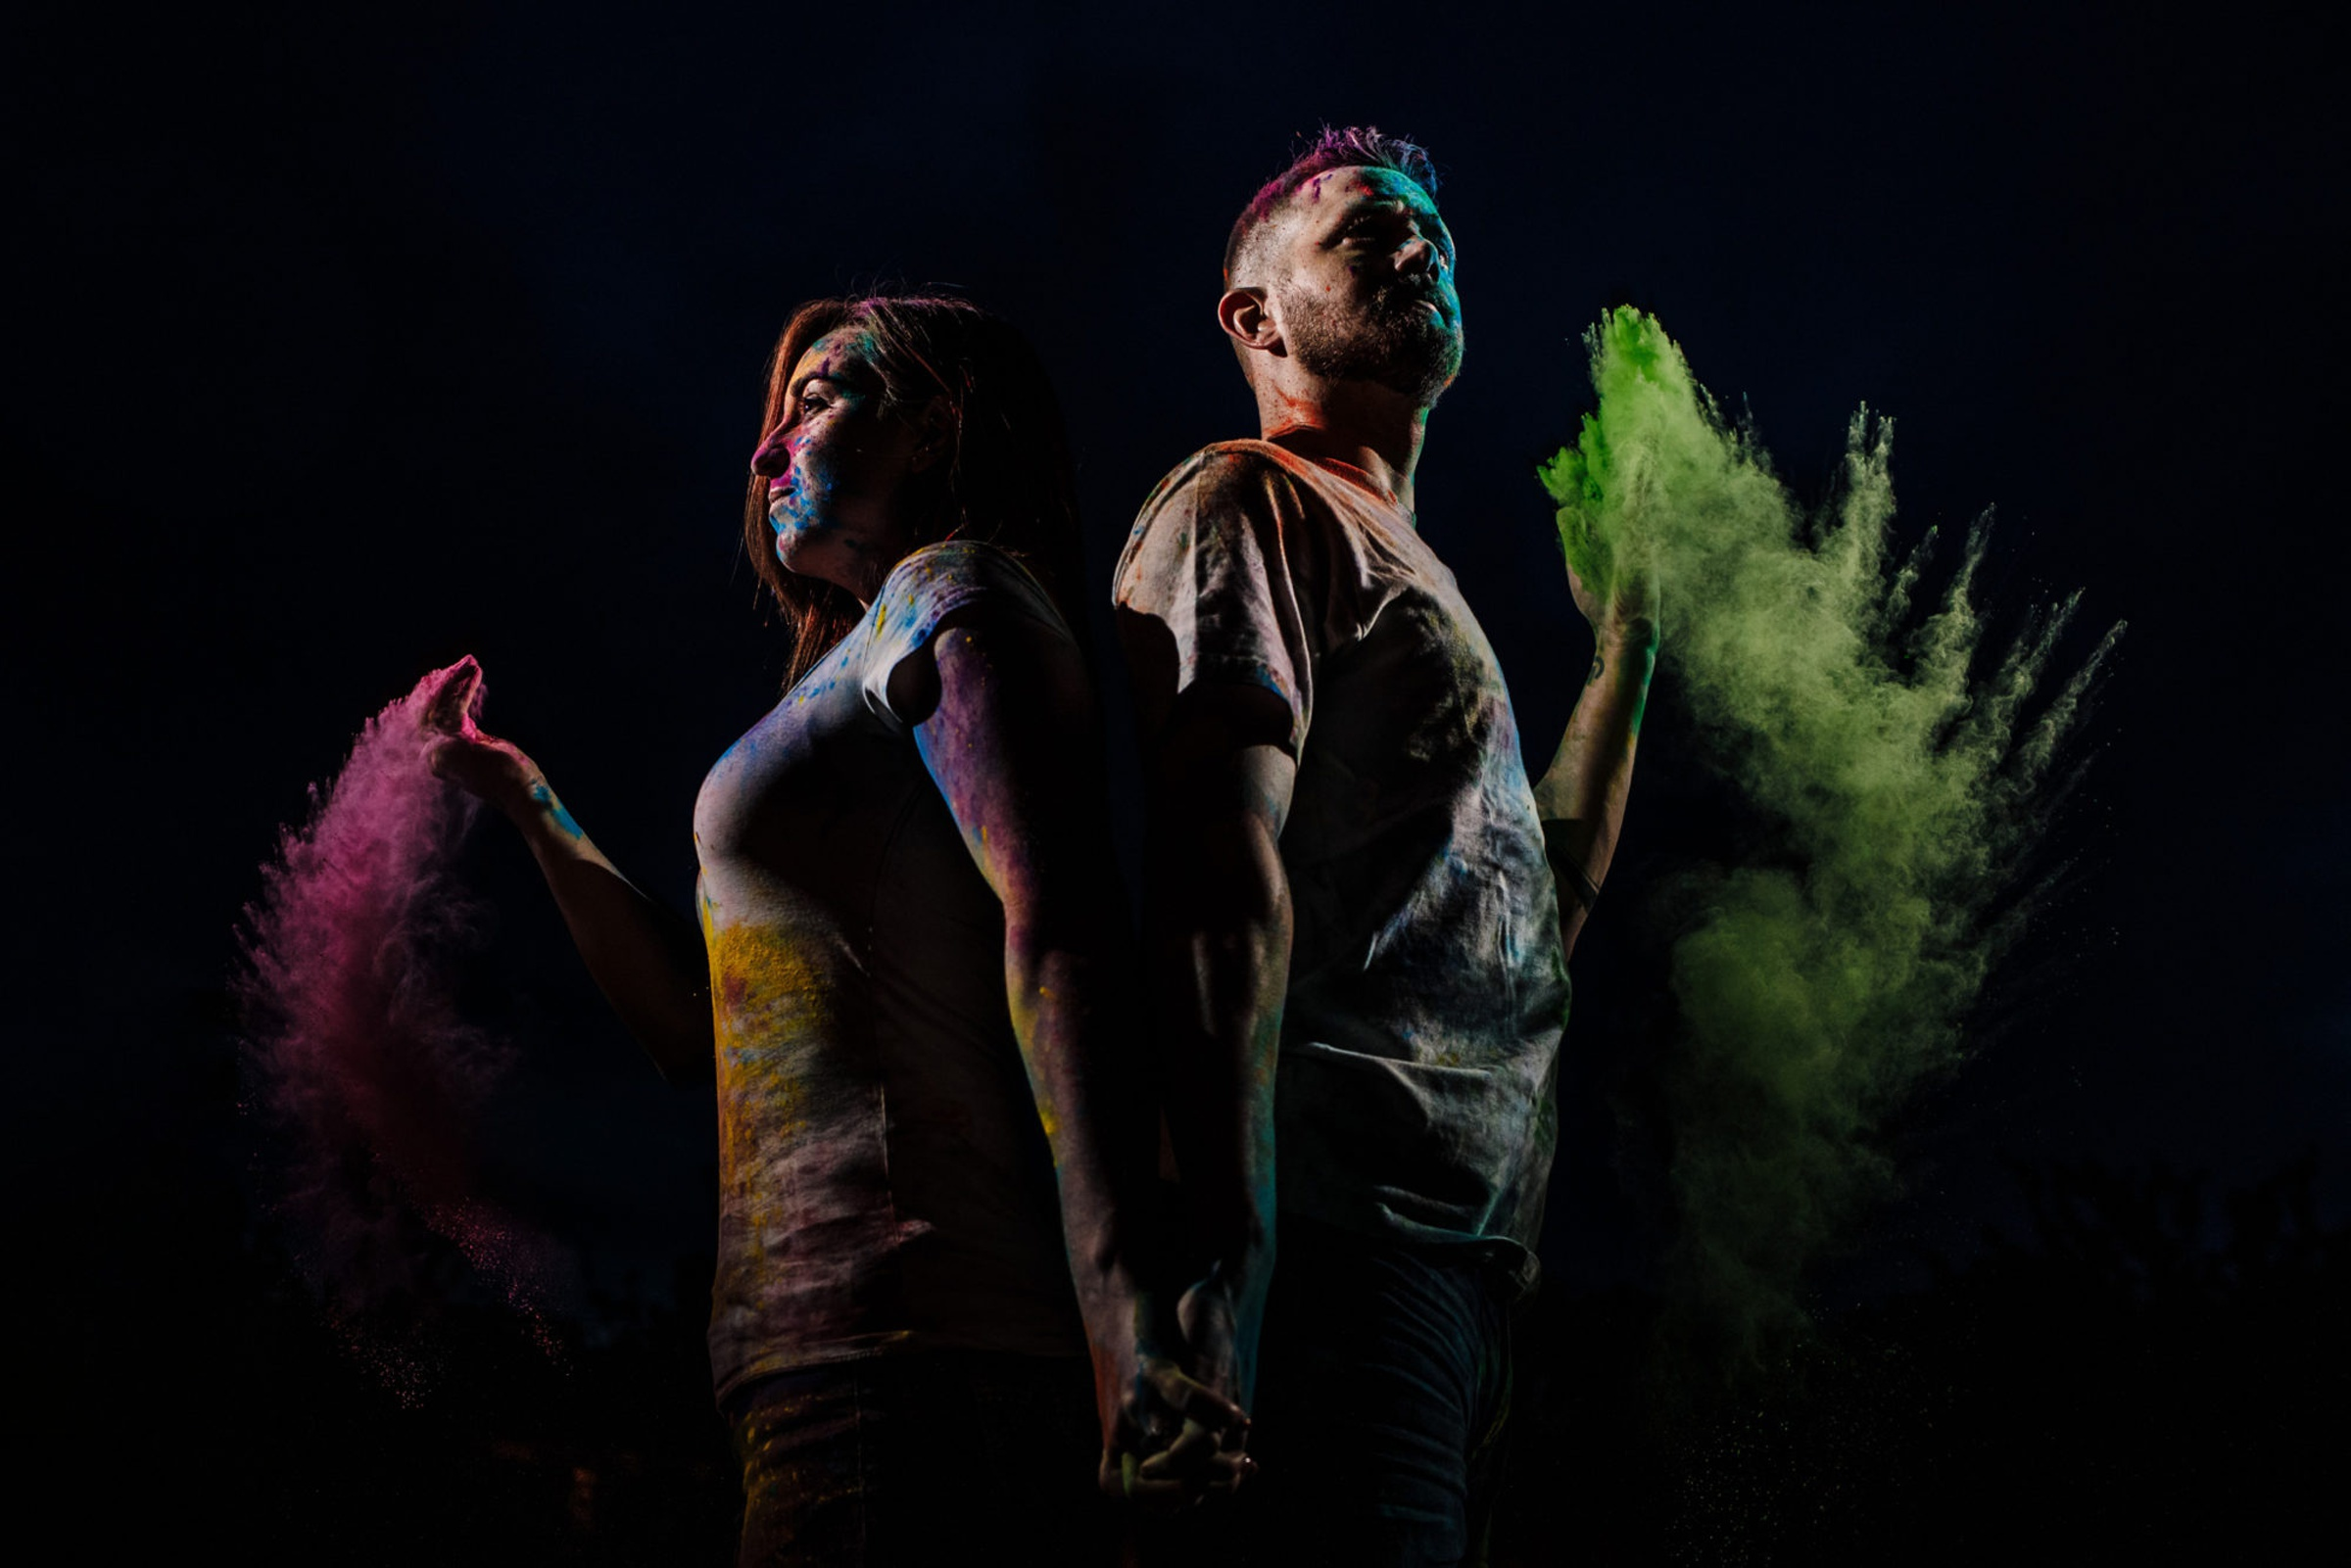 Dramatically lit engagement photo with color dust - photo by Photography by Brea